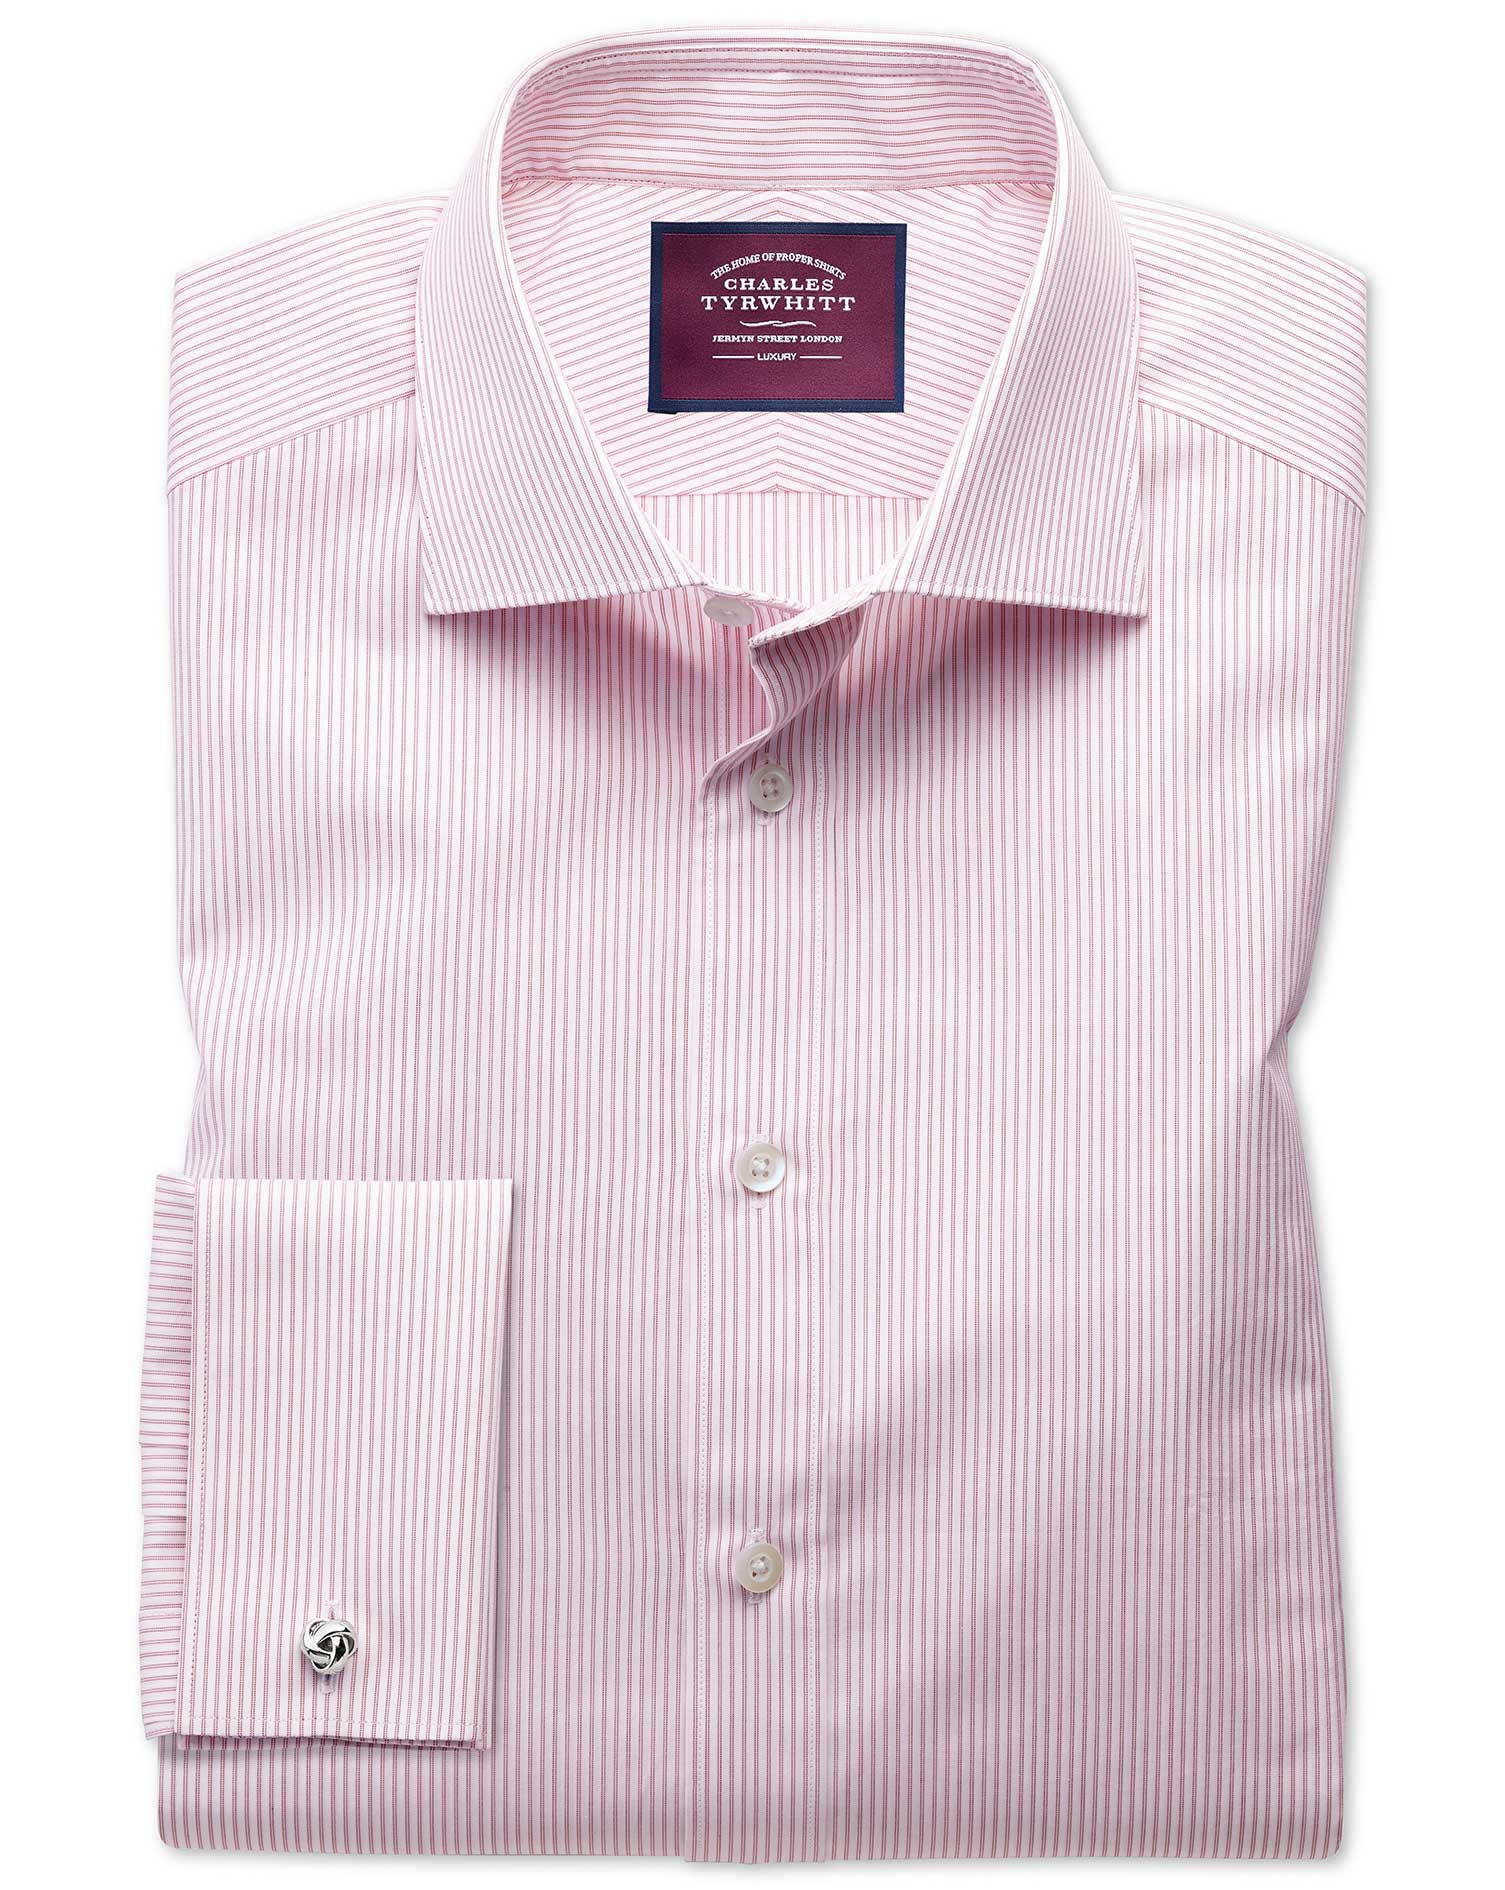 Slim Fit Semi-Cutaway Luxury Poplin Red and White Egyptian Cotton Formal Shirt Single Cuff Size 15/3